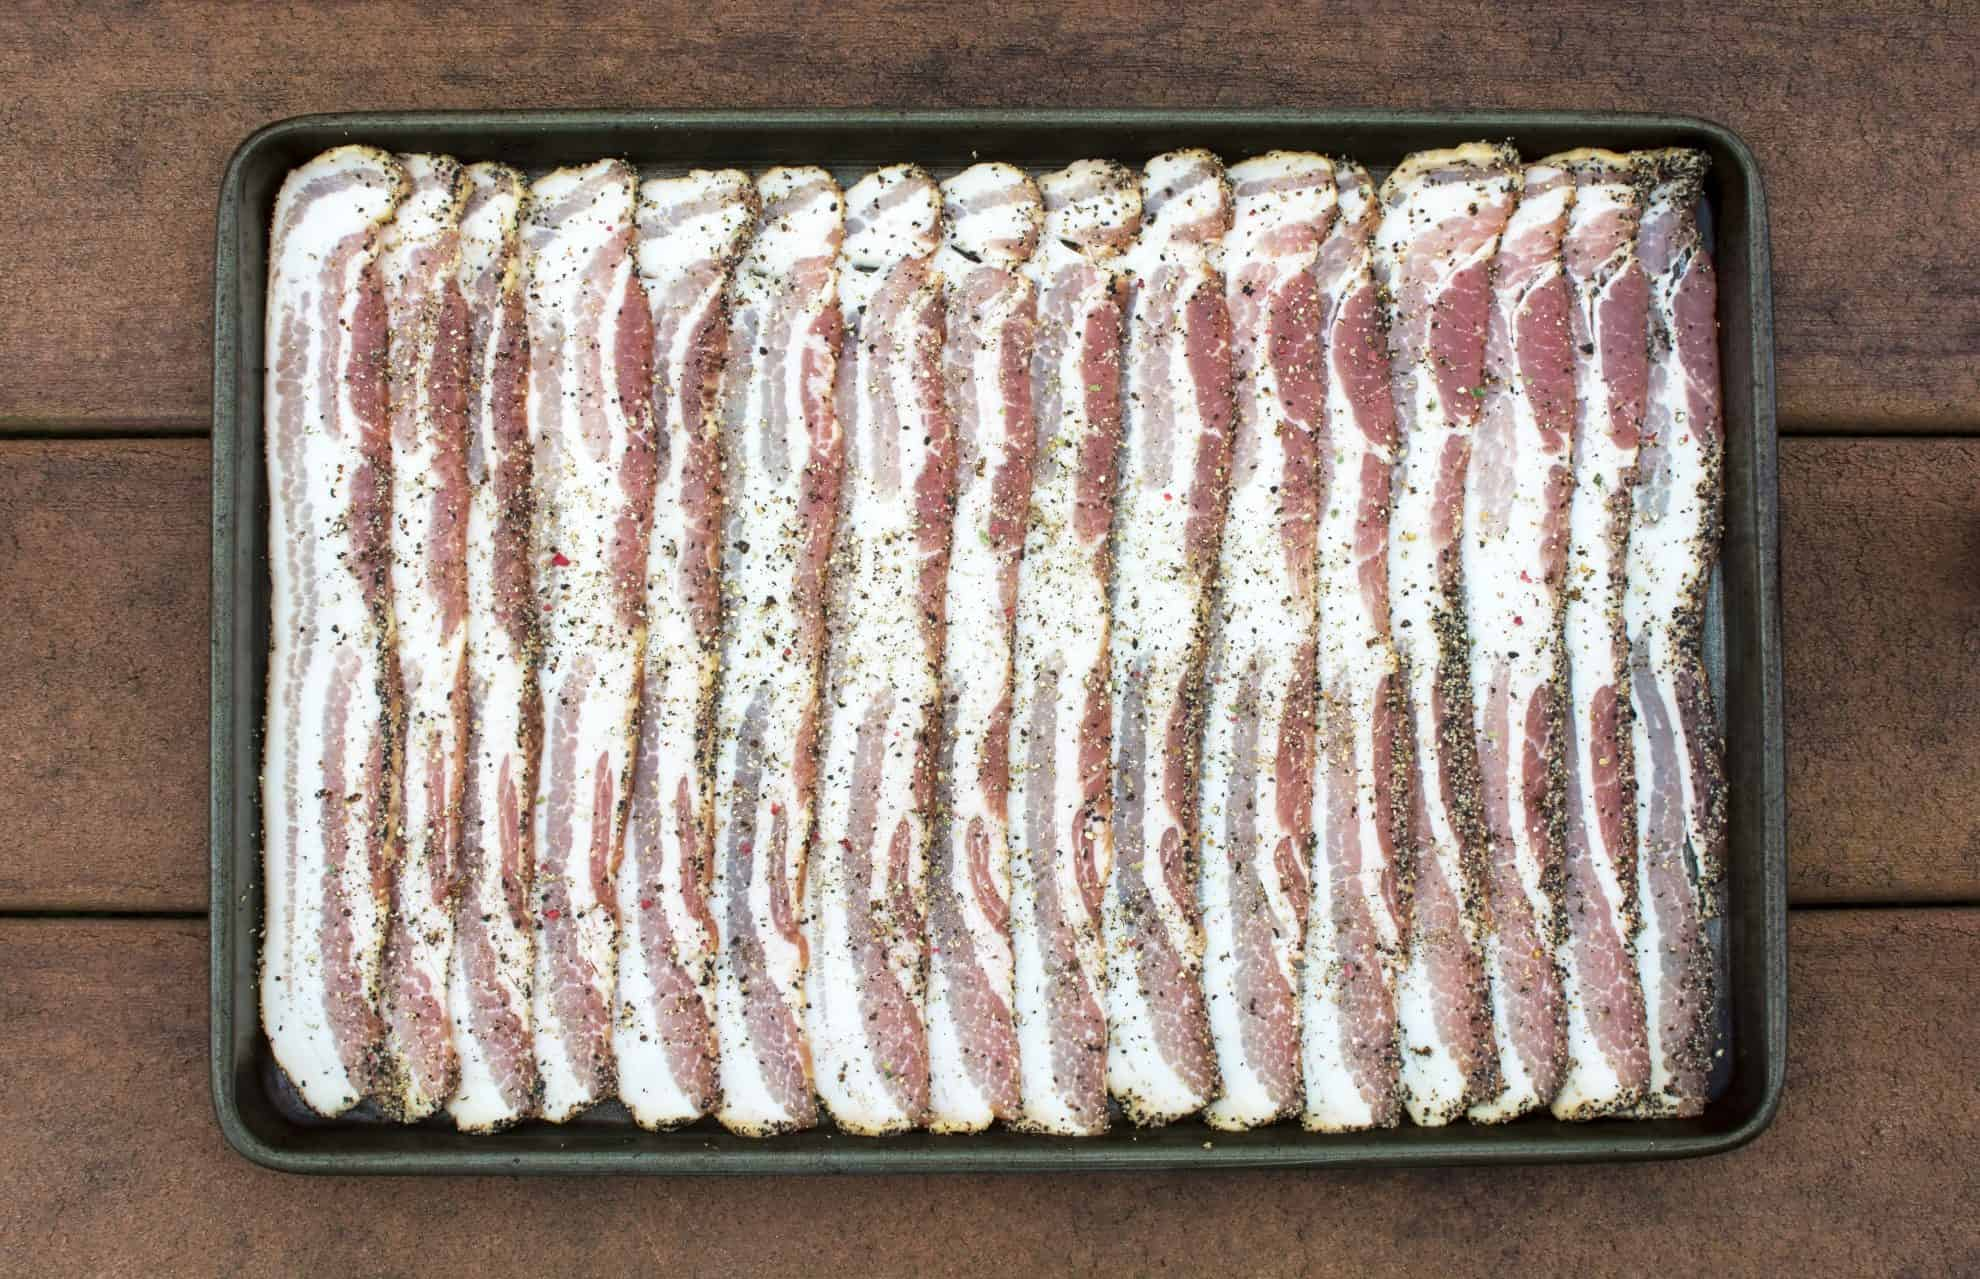 Seasoned uncooked bacon on a baking sheet